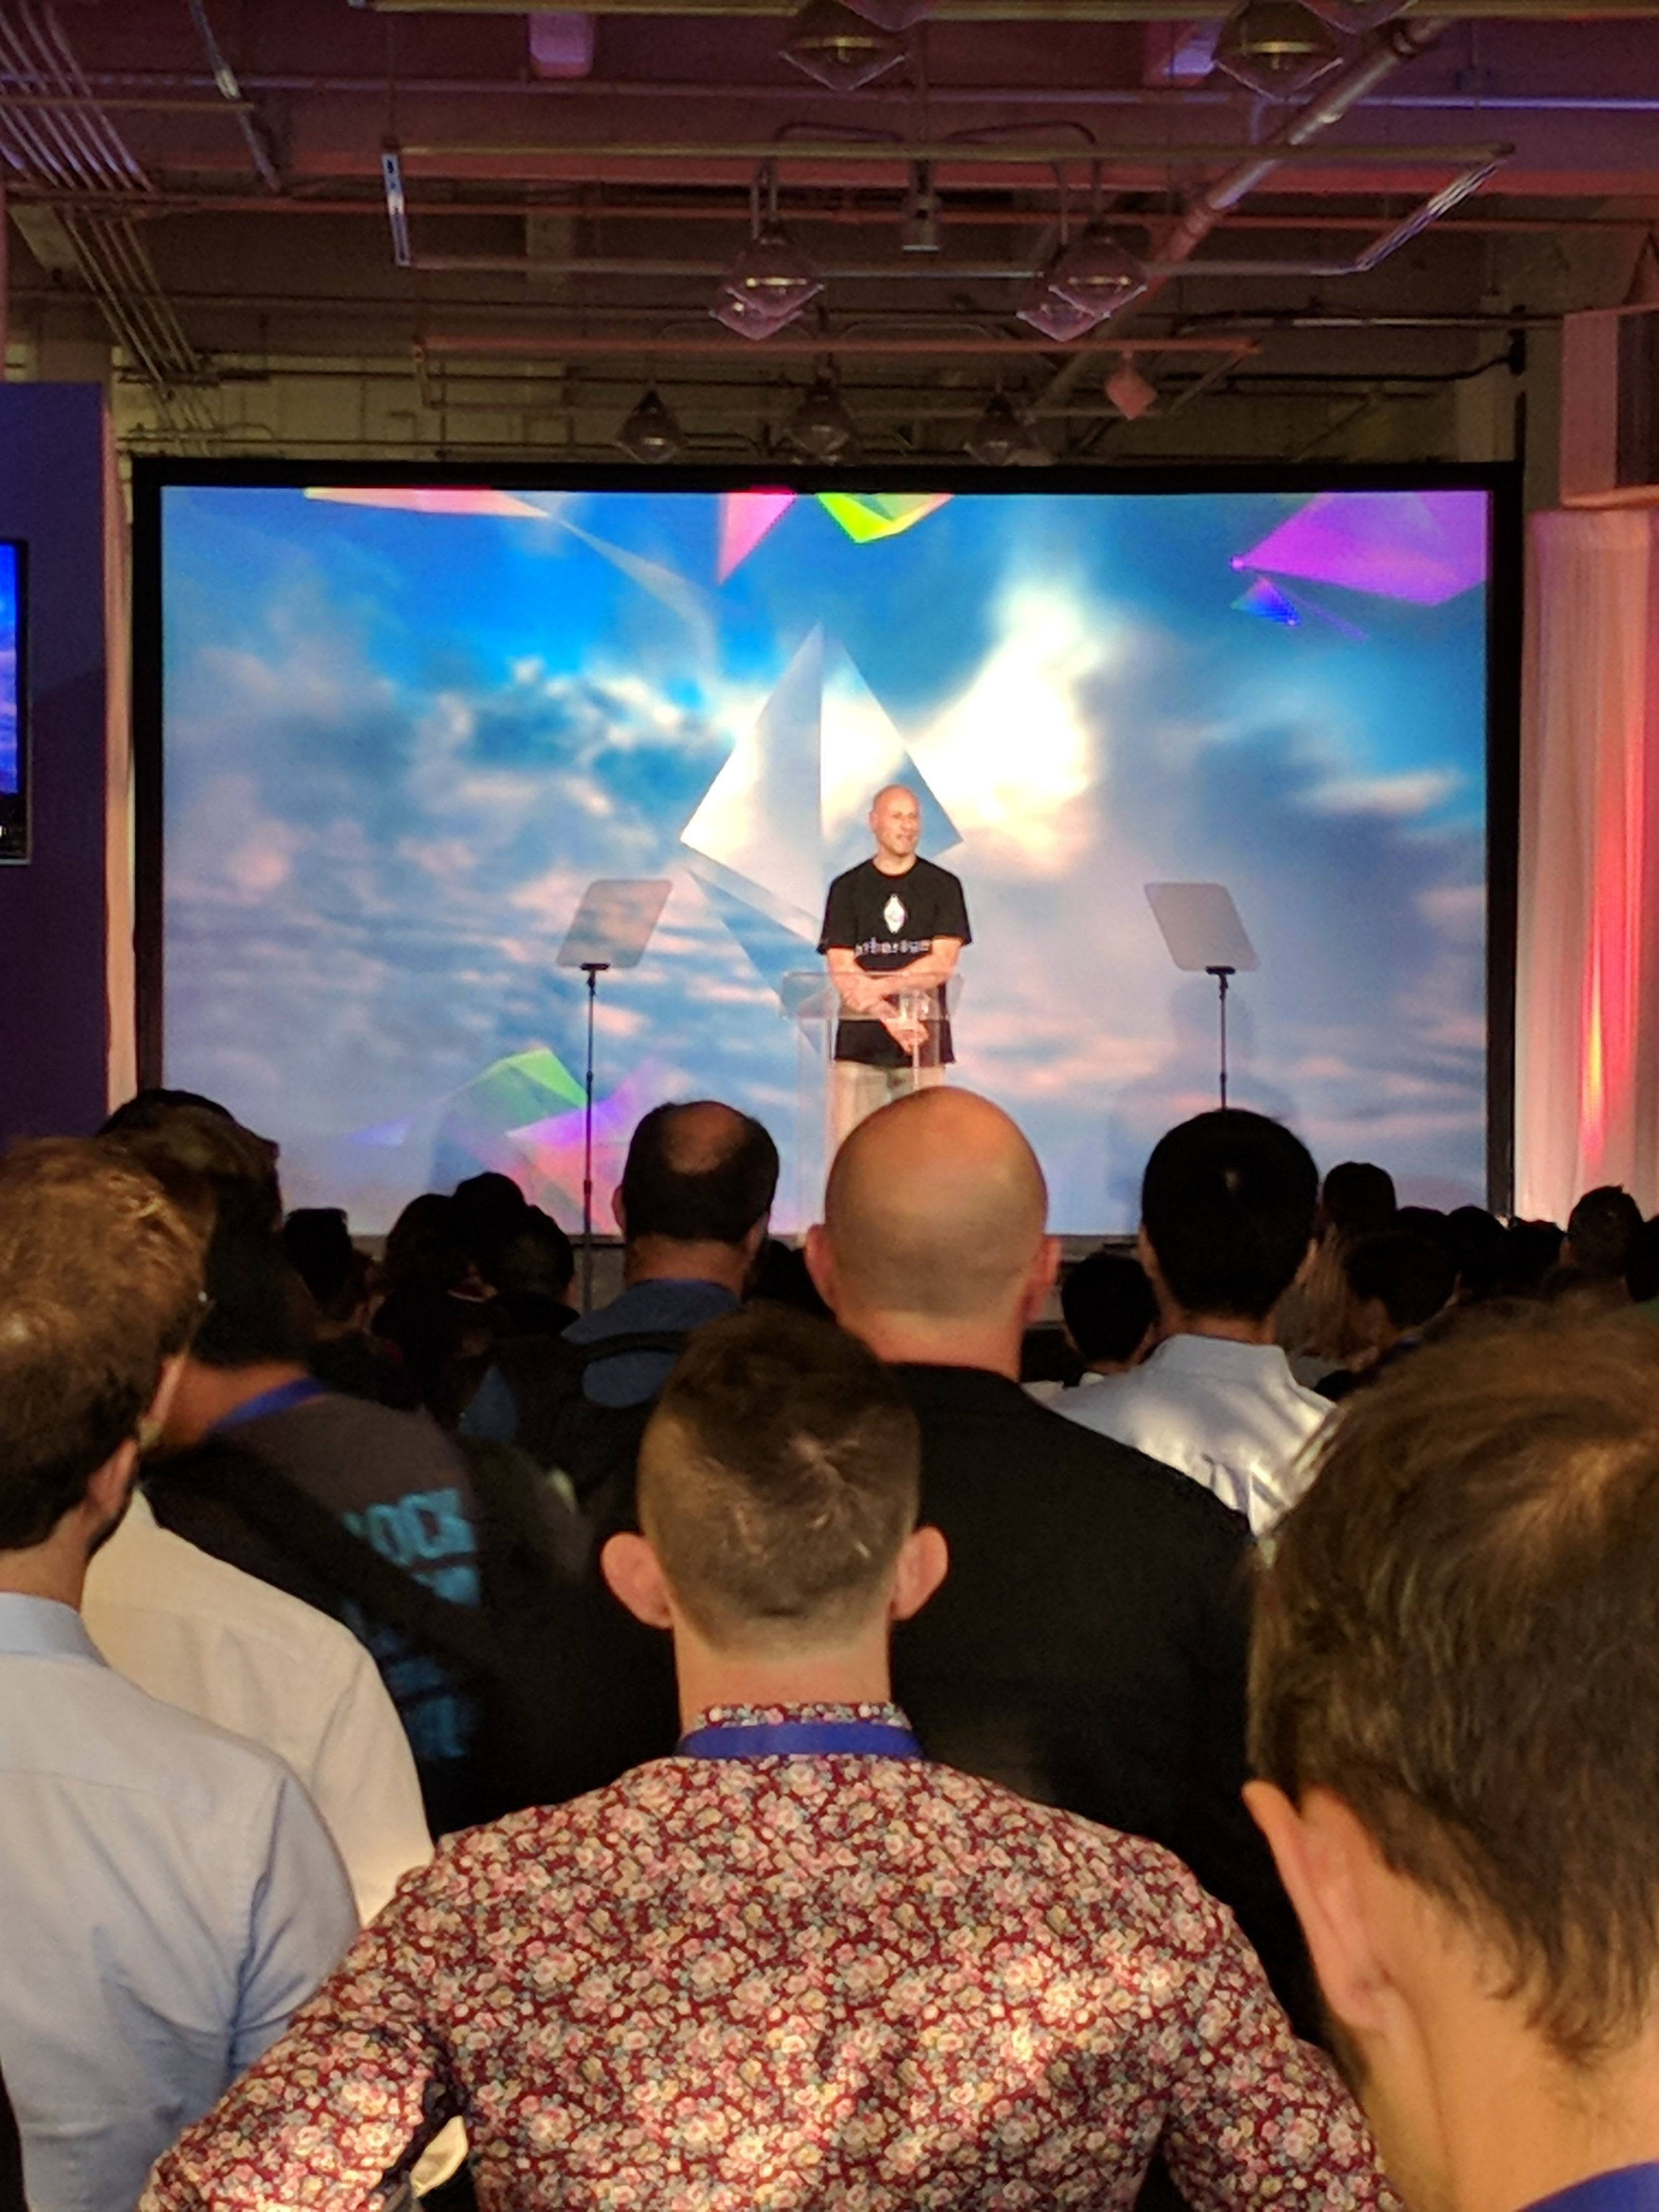 And of course, standing room only when Ethereum Co-Founder Joseph Lubin speaks